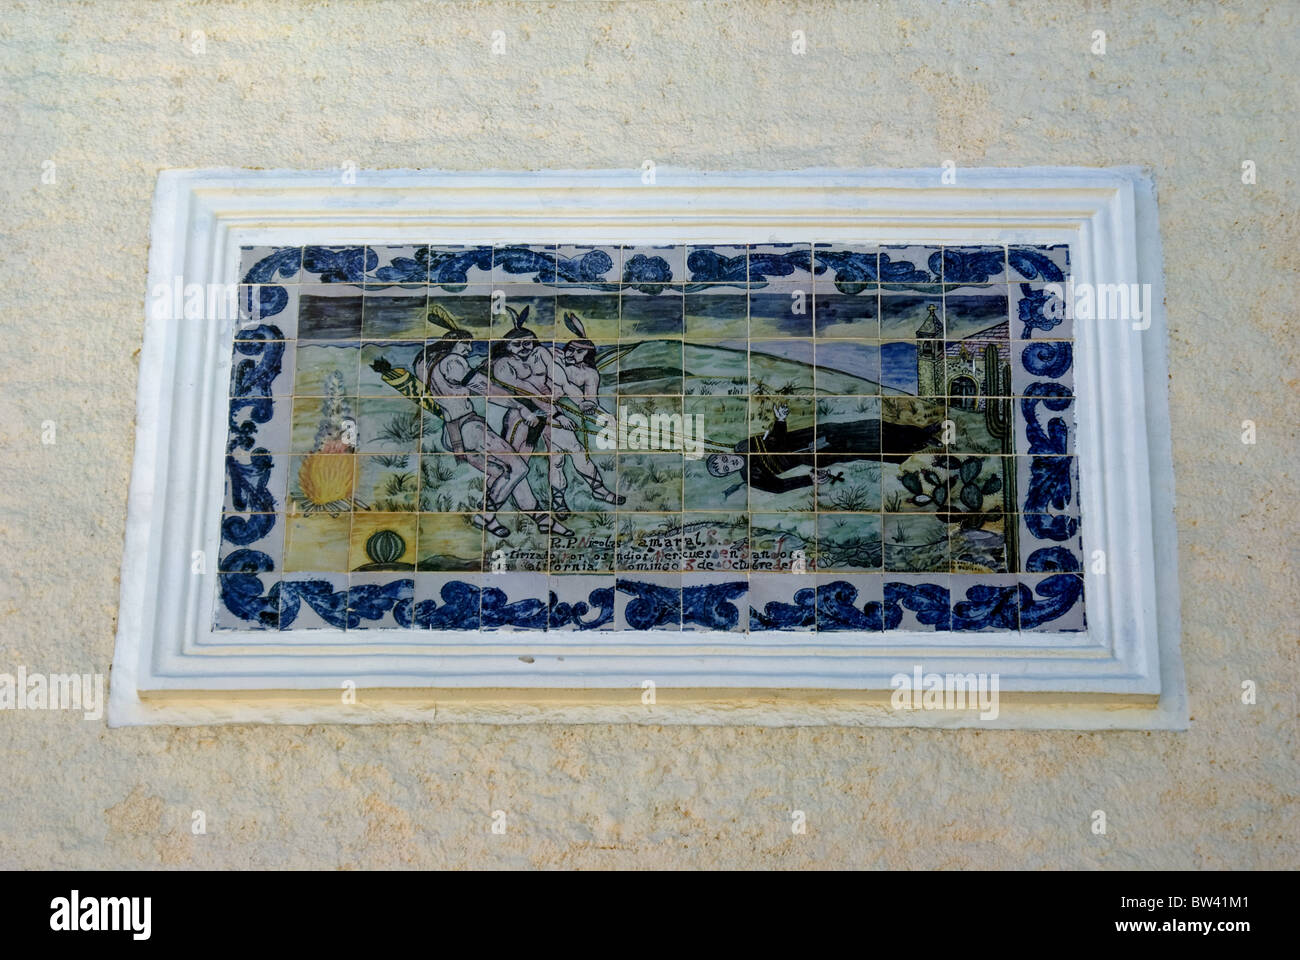 Tile mosaic art above mission church door in Baja, Mexico, depicting Indians revolting against priests who are against - Stock Image